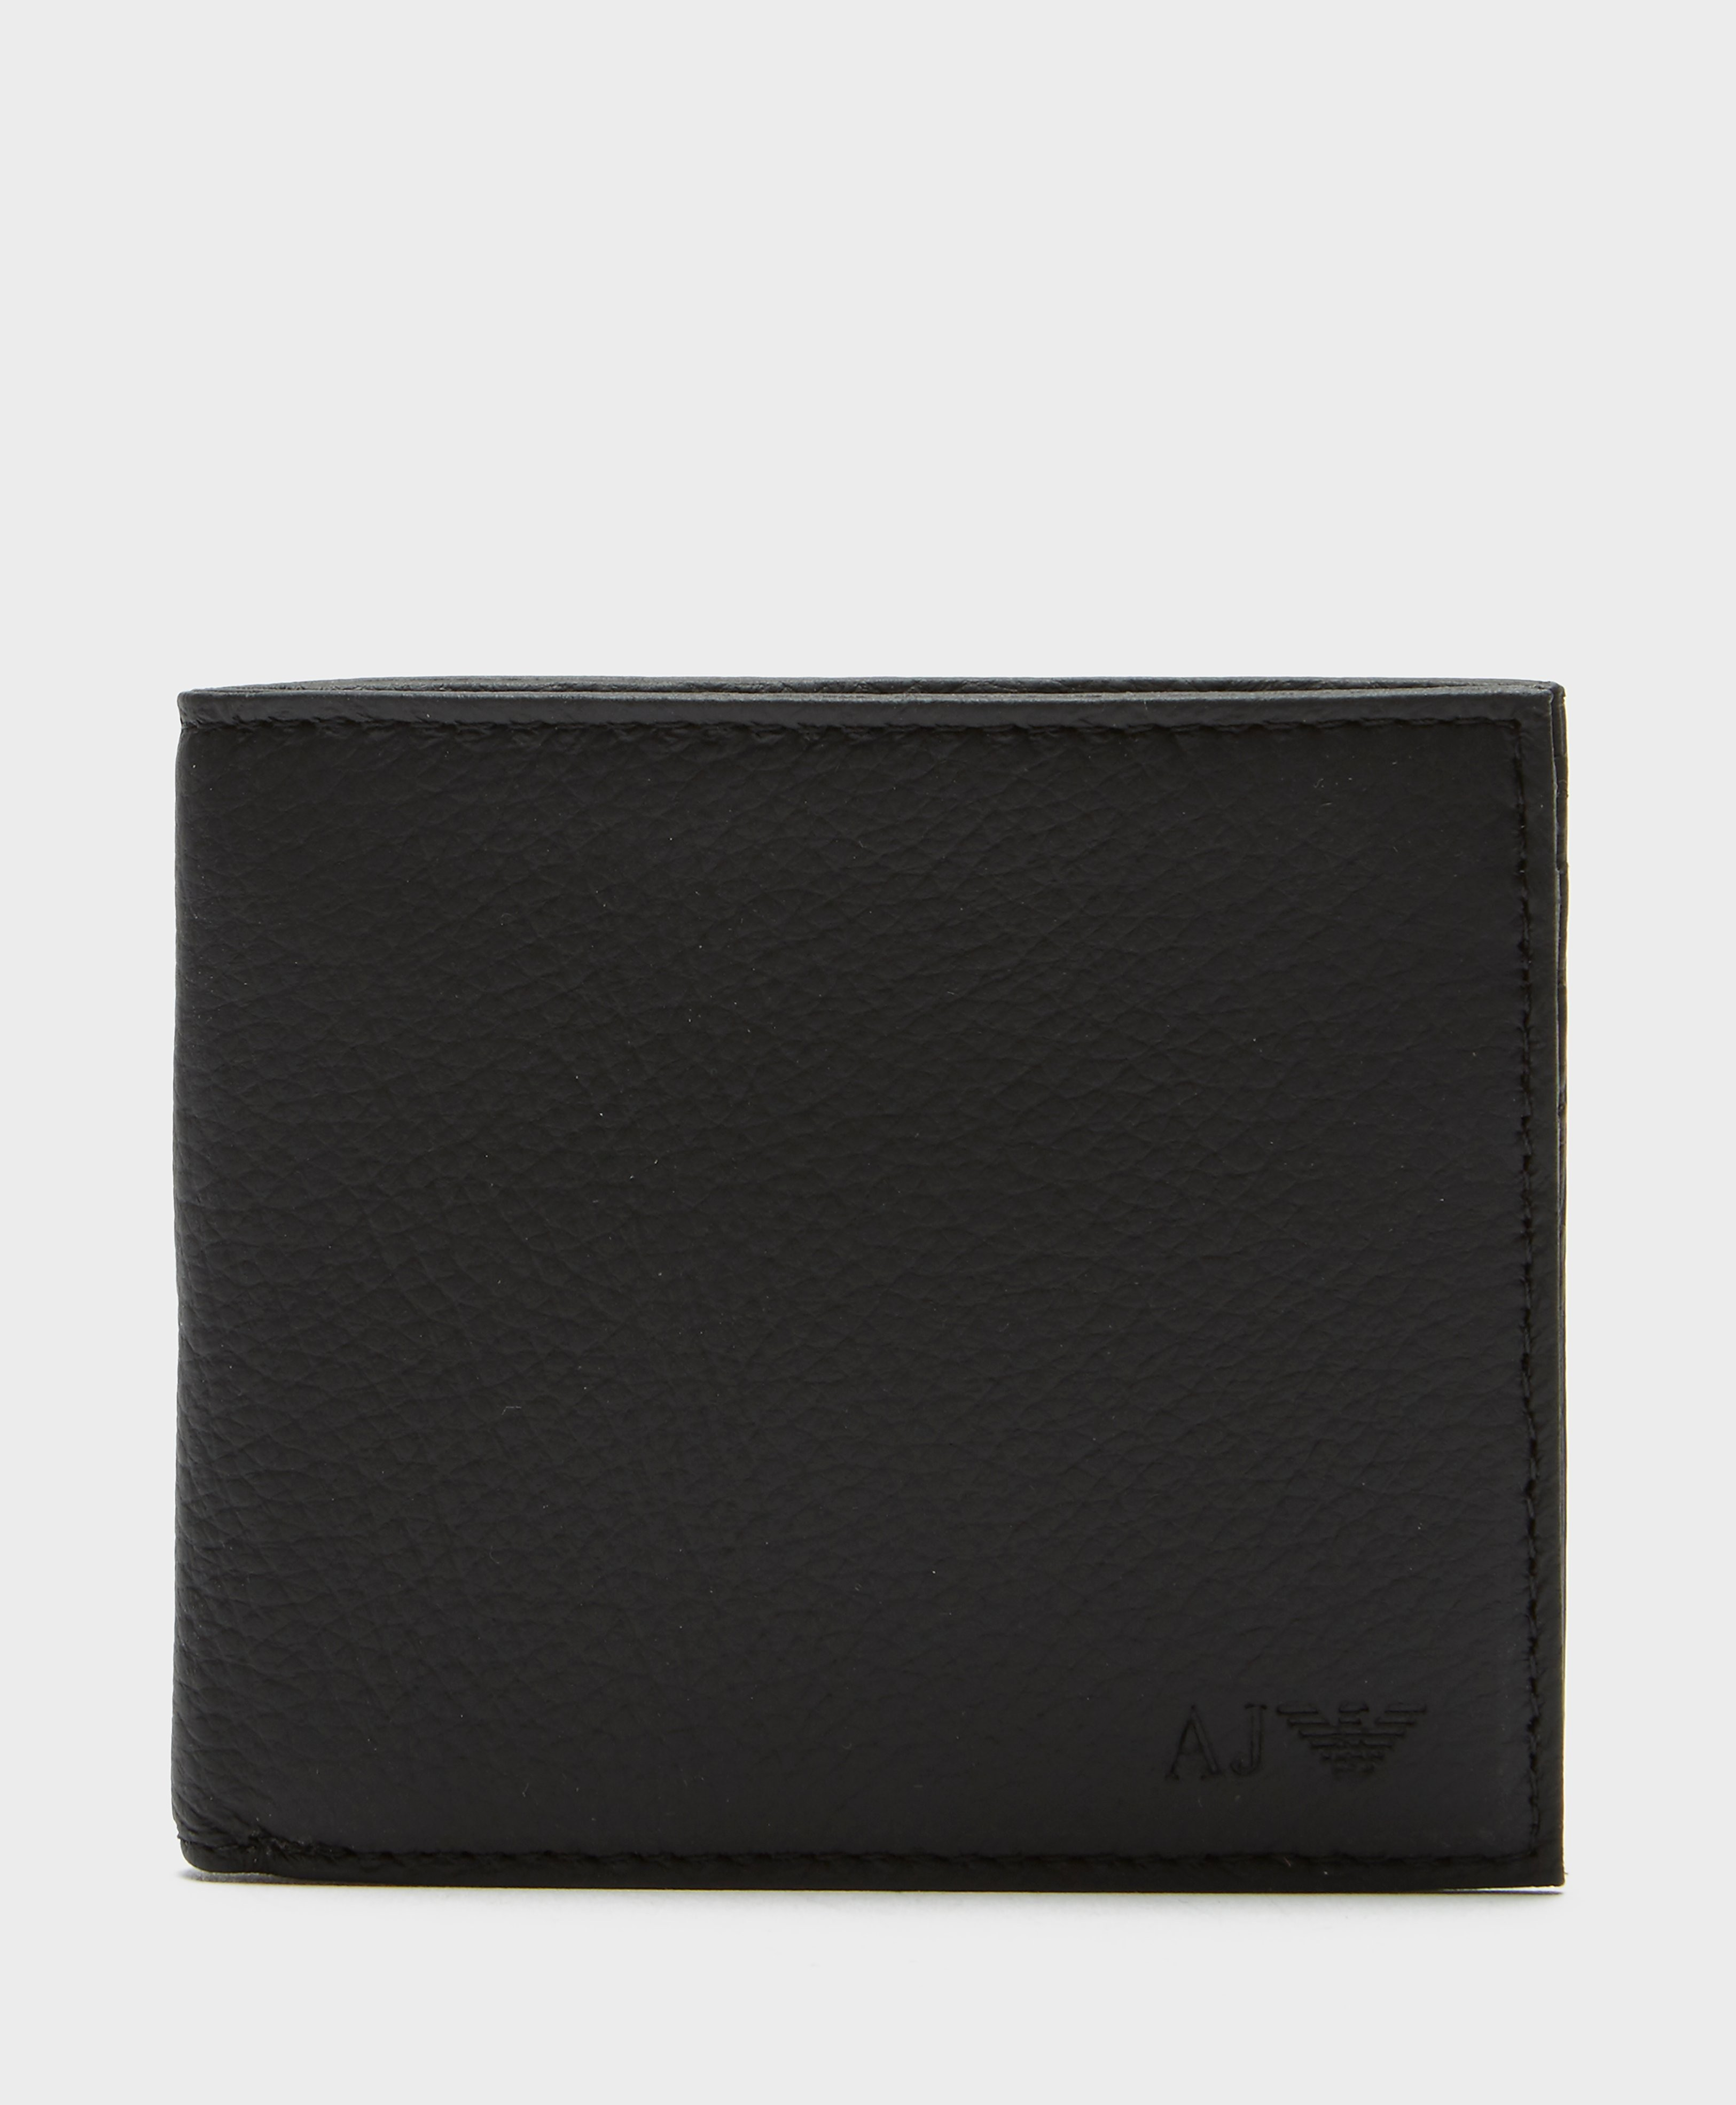 Armani Jeans Bi-Fold Leather Wallet